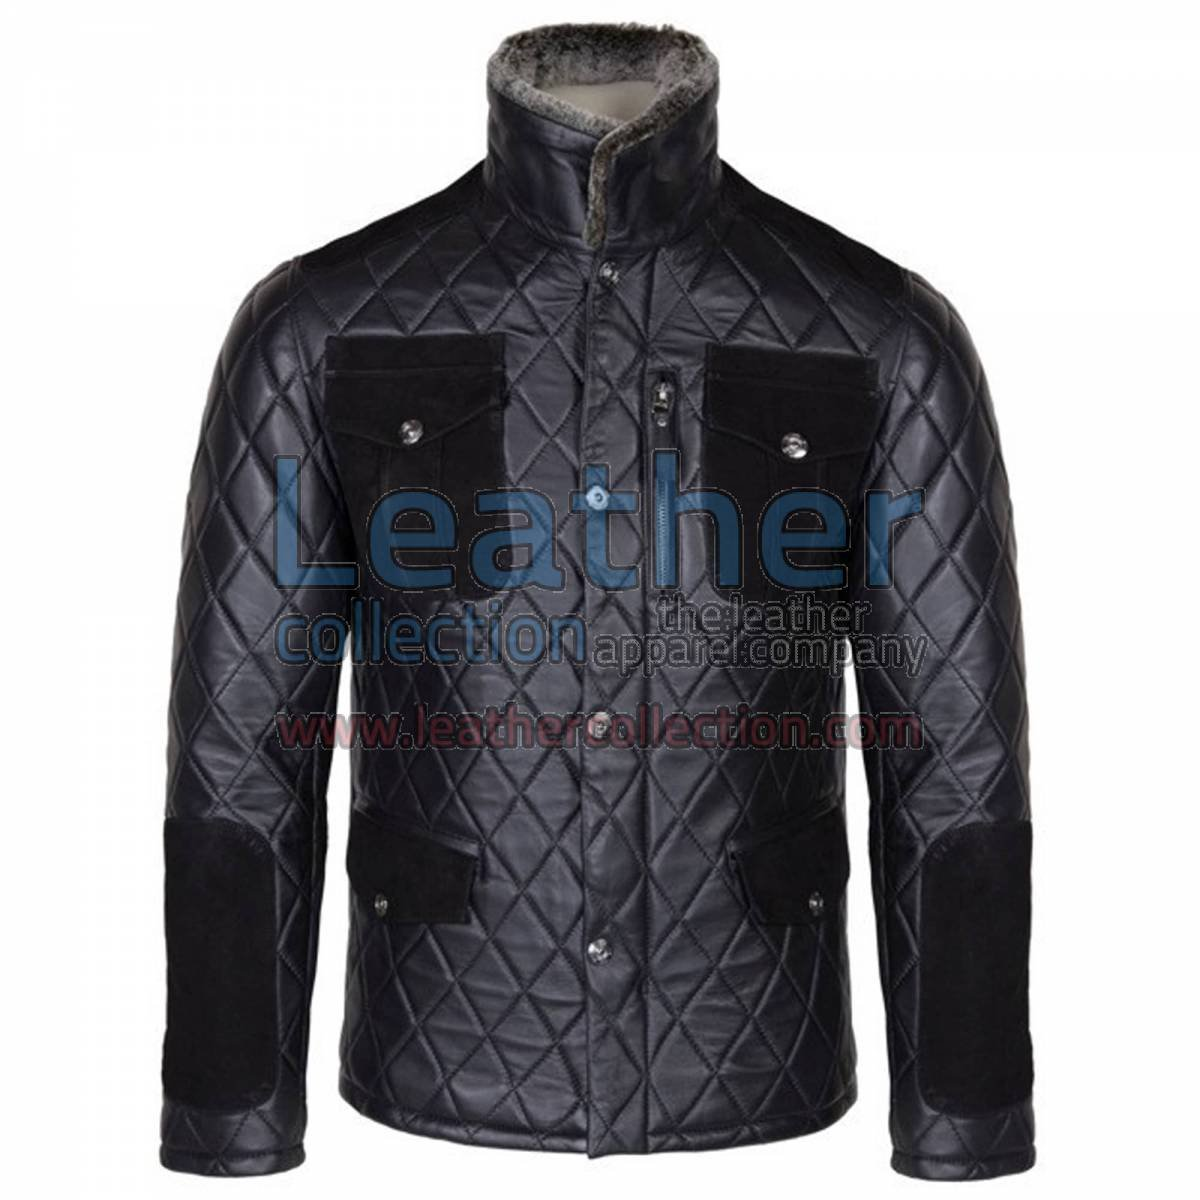 Diamond Leather Jacket with Fur Collar & Flapped Pockets